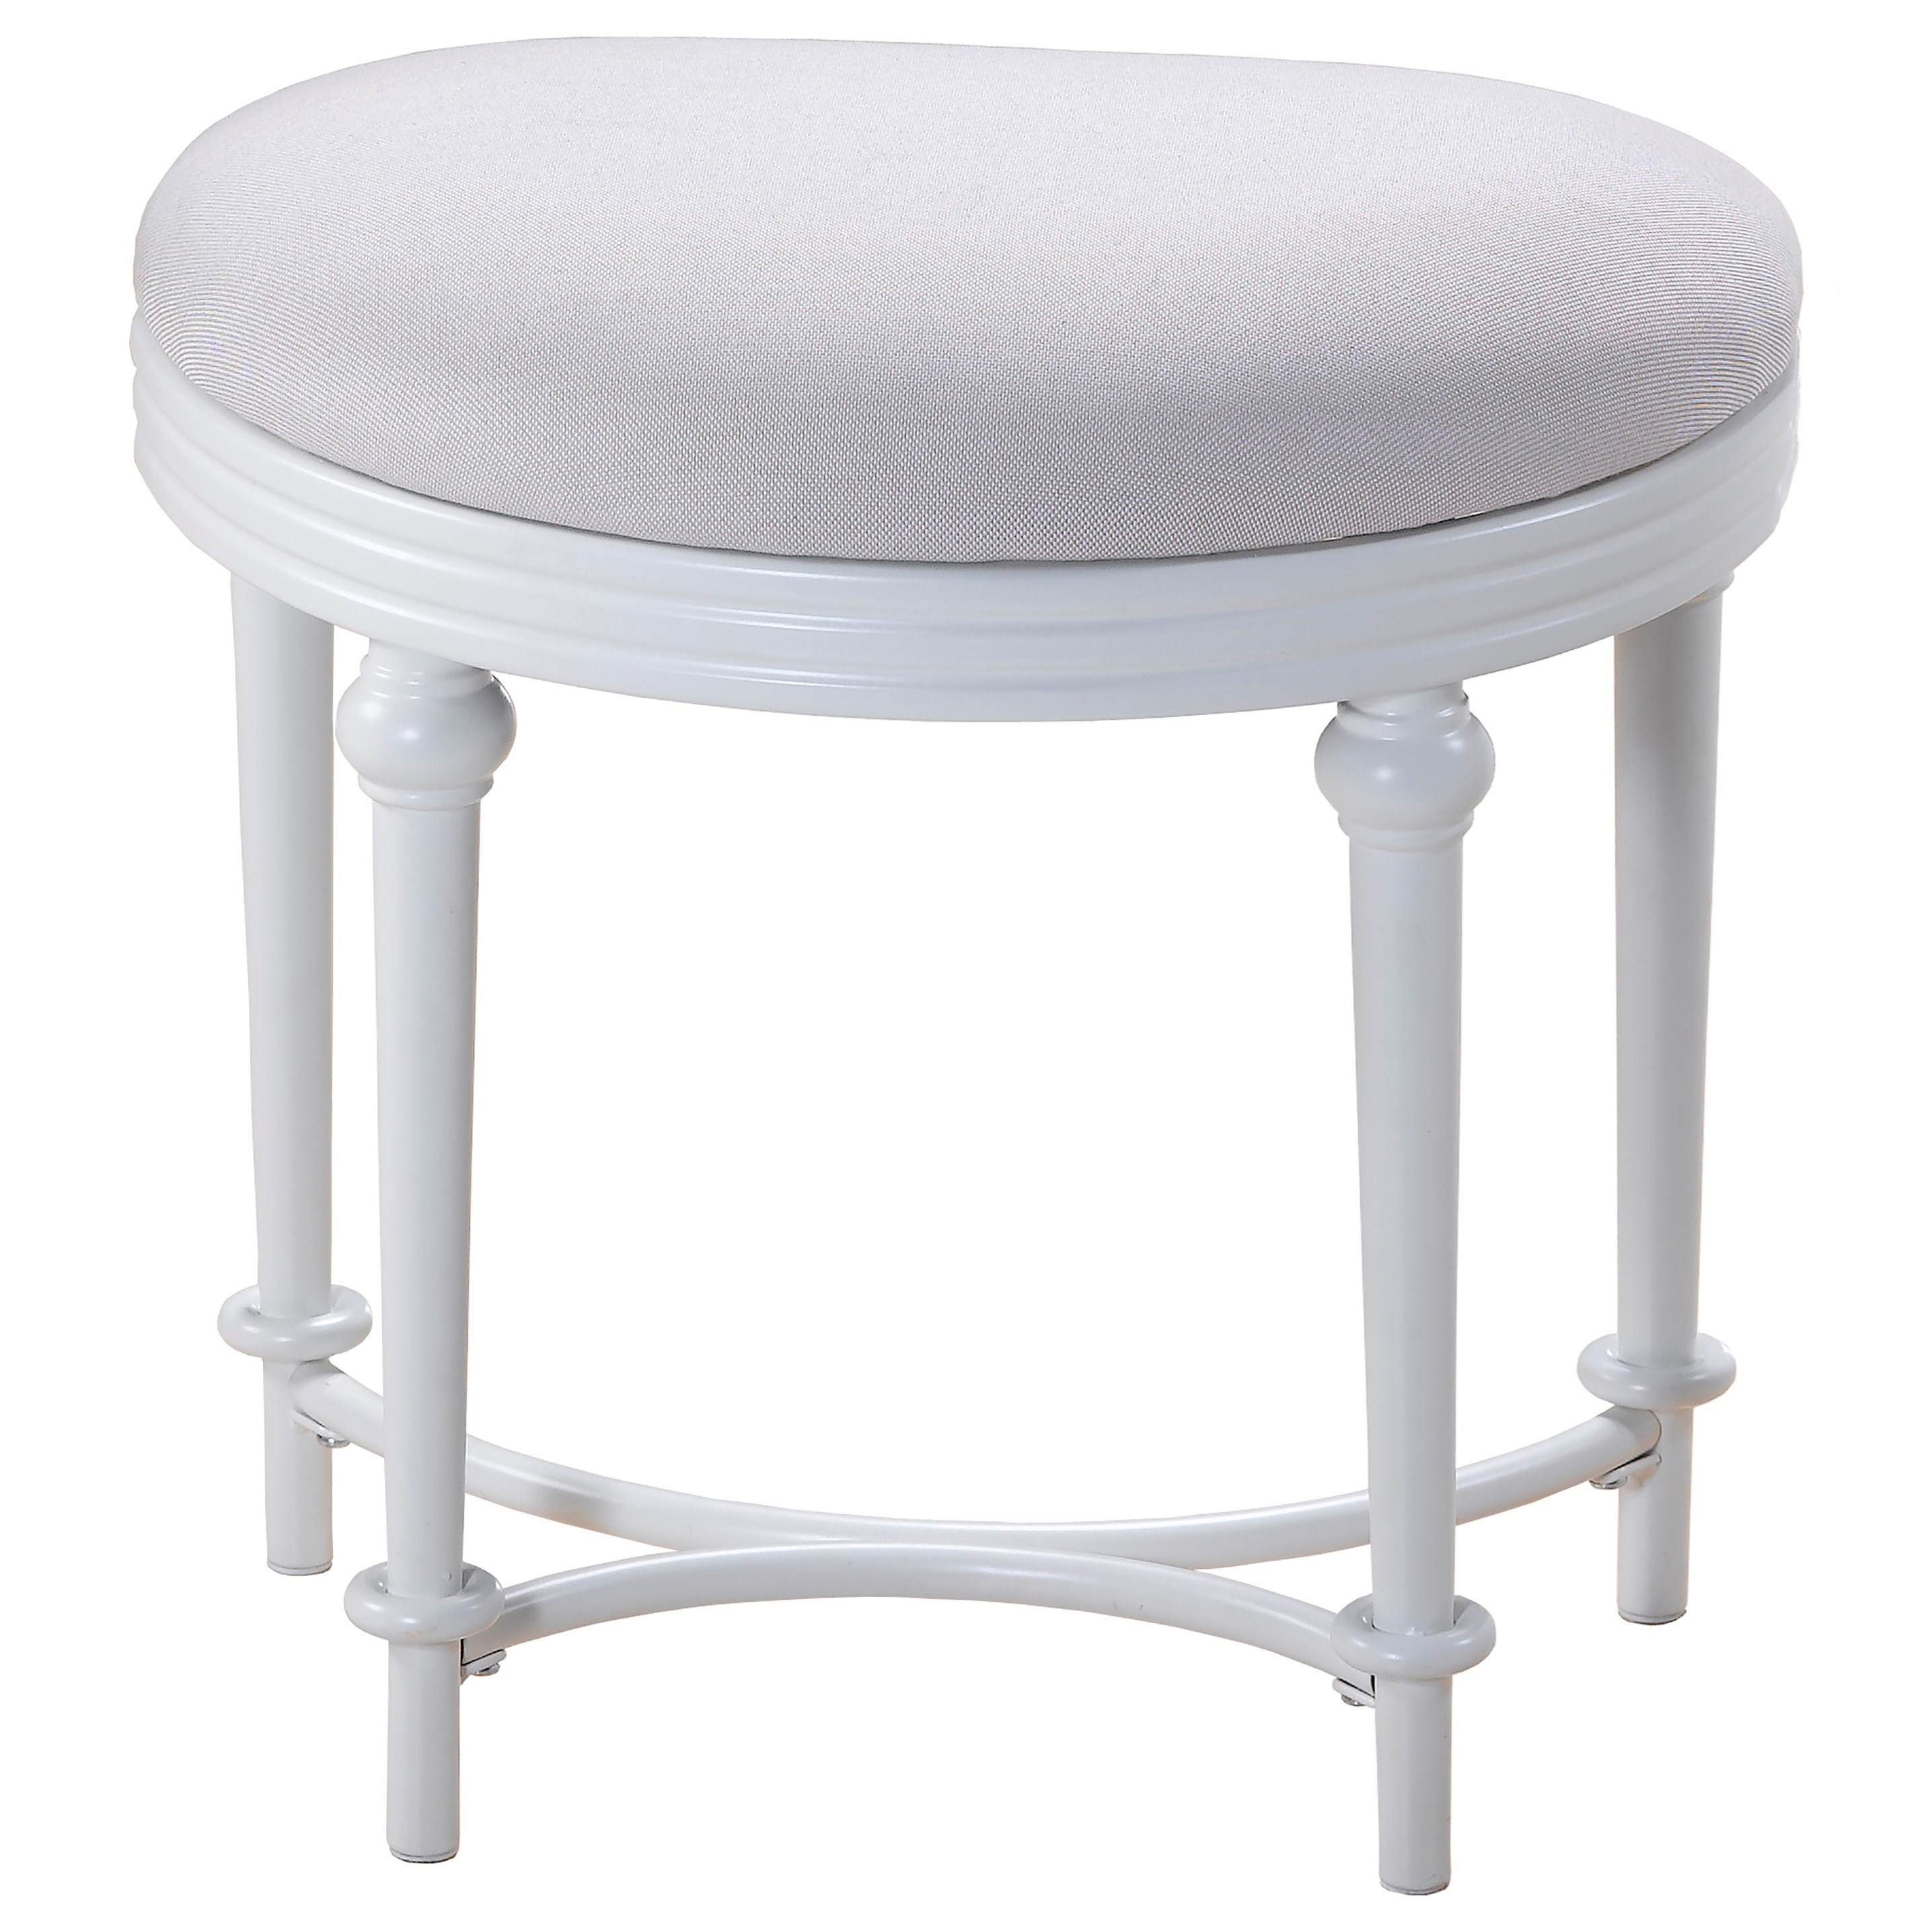 Vanity Stools Or Benches Hillsdale Vanity Stools Oval Vanity Stool With Upholstered